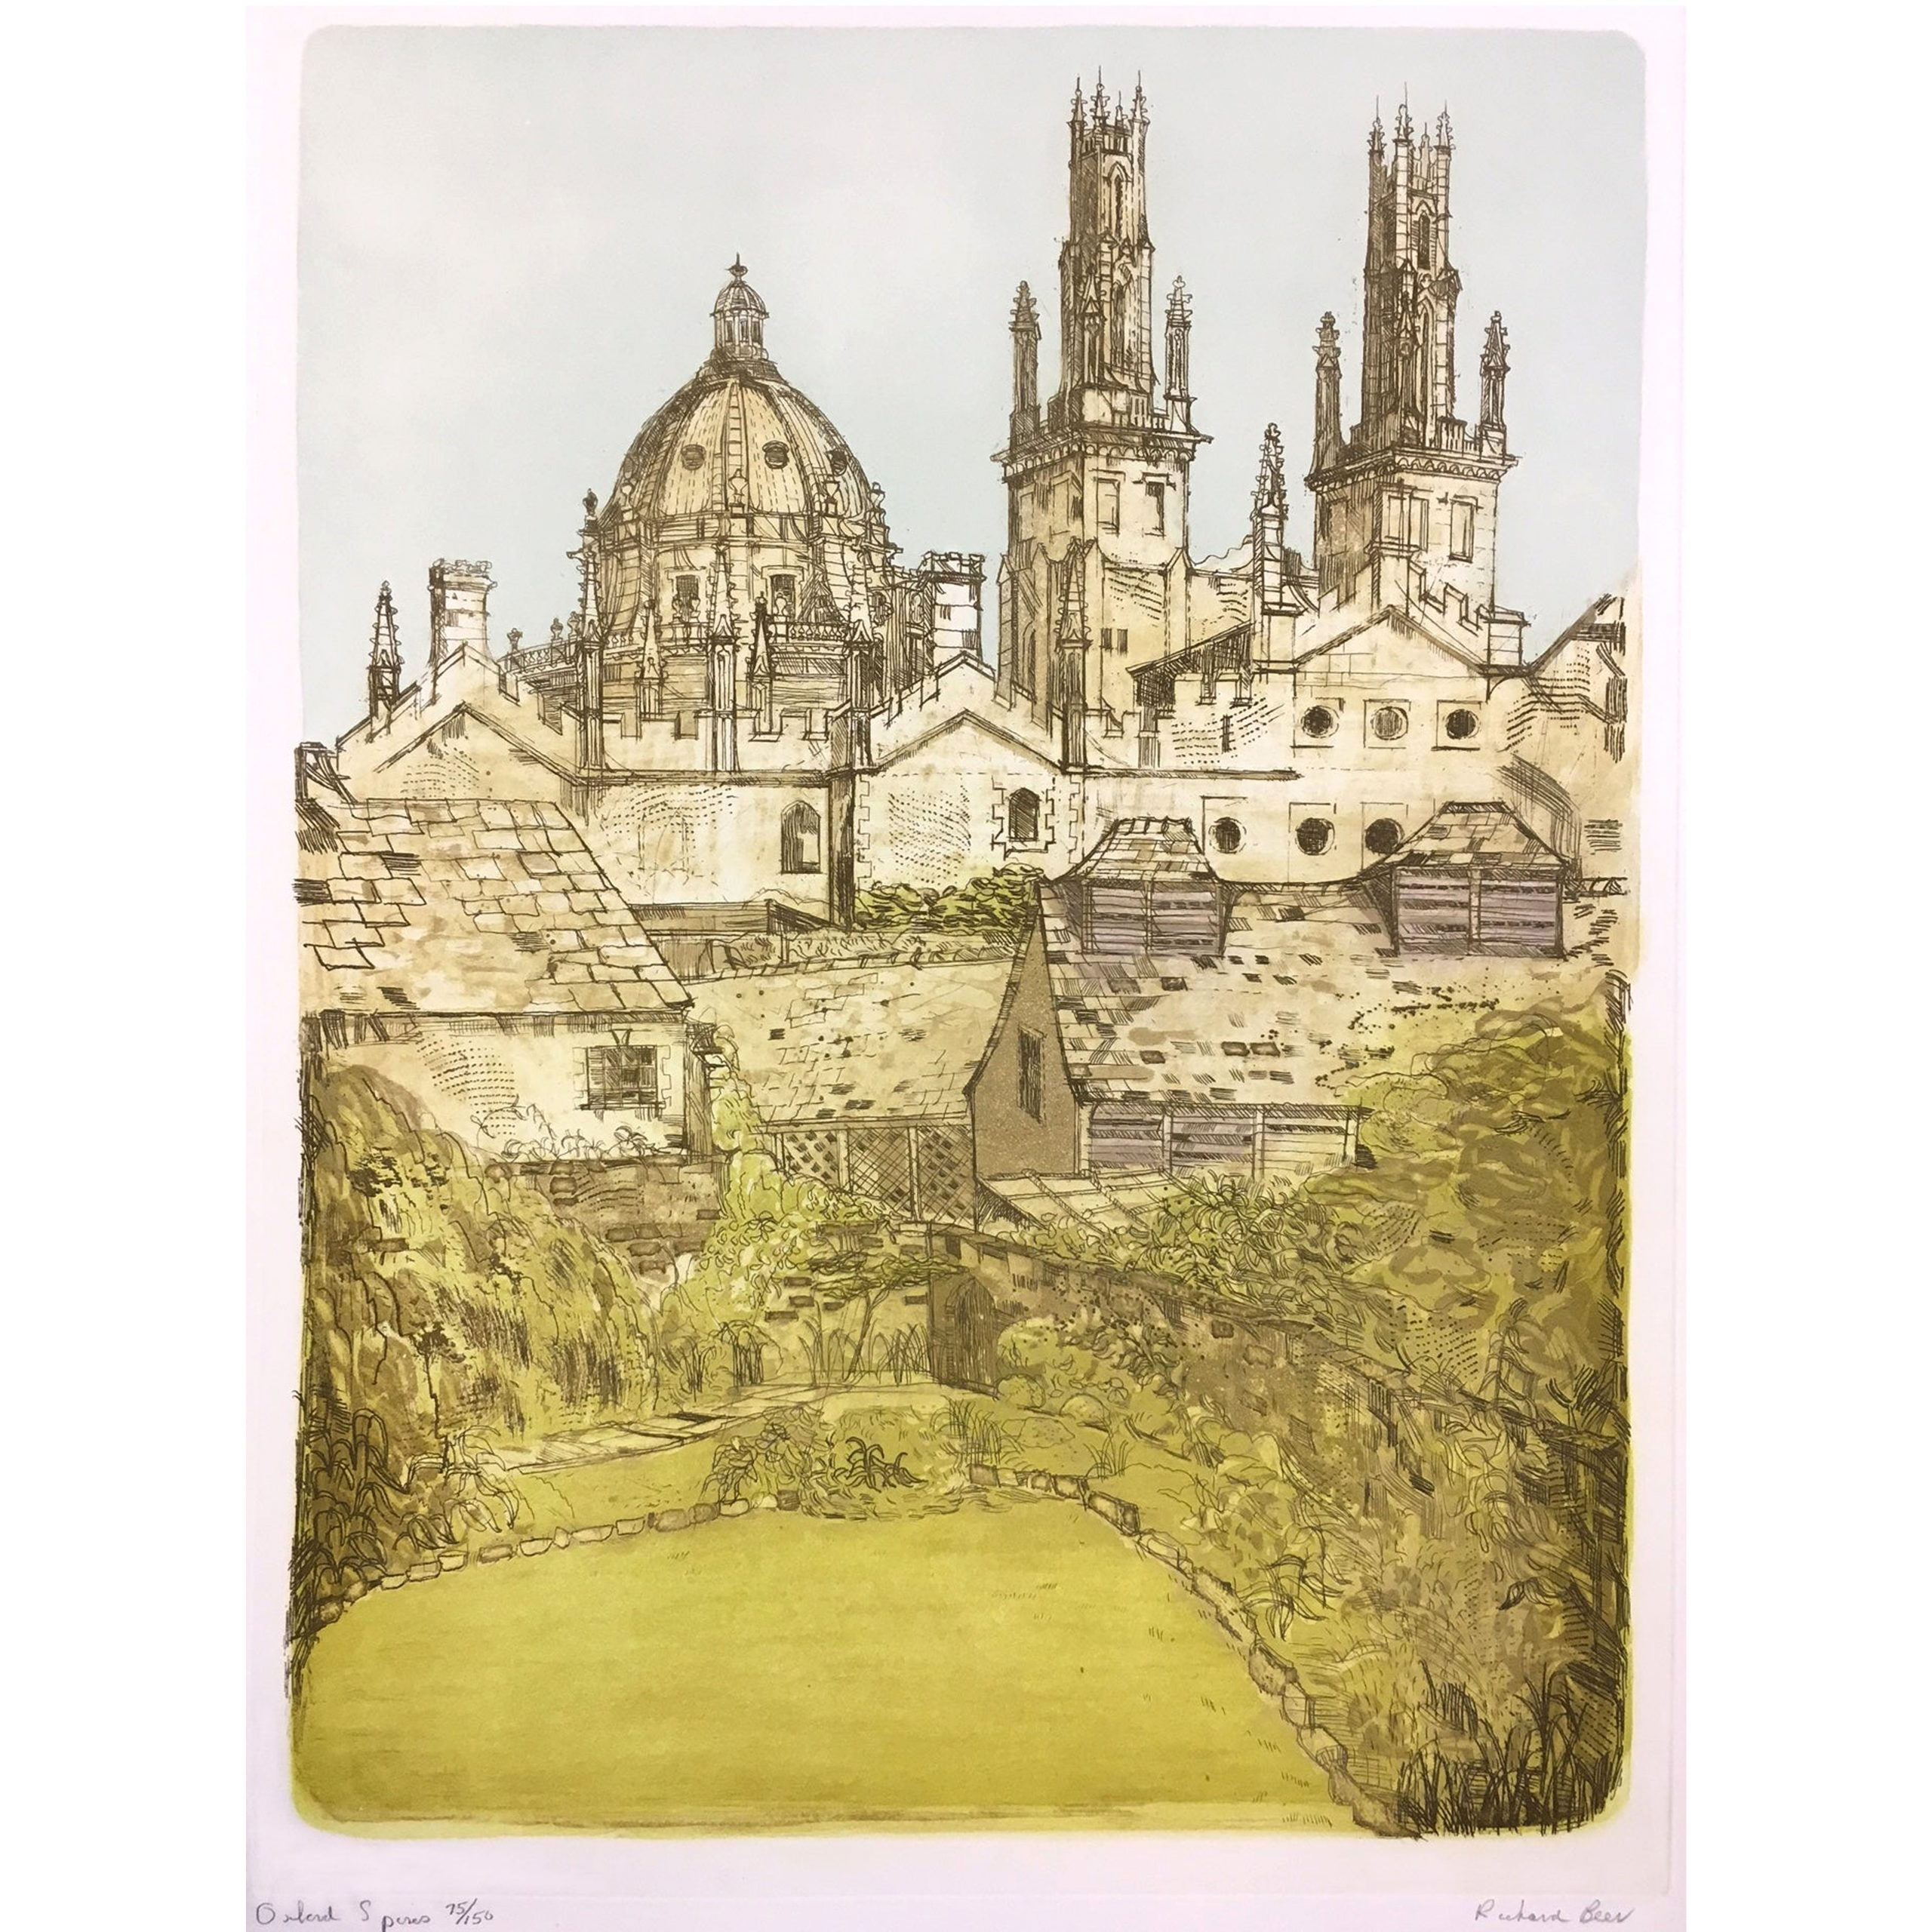 Richard Beer Oxford Spires etching print All Souls College Radcliffe Camera Art